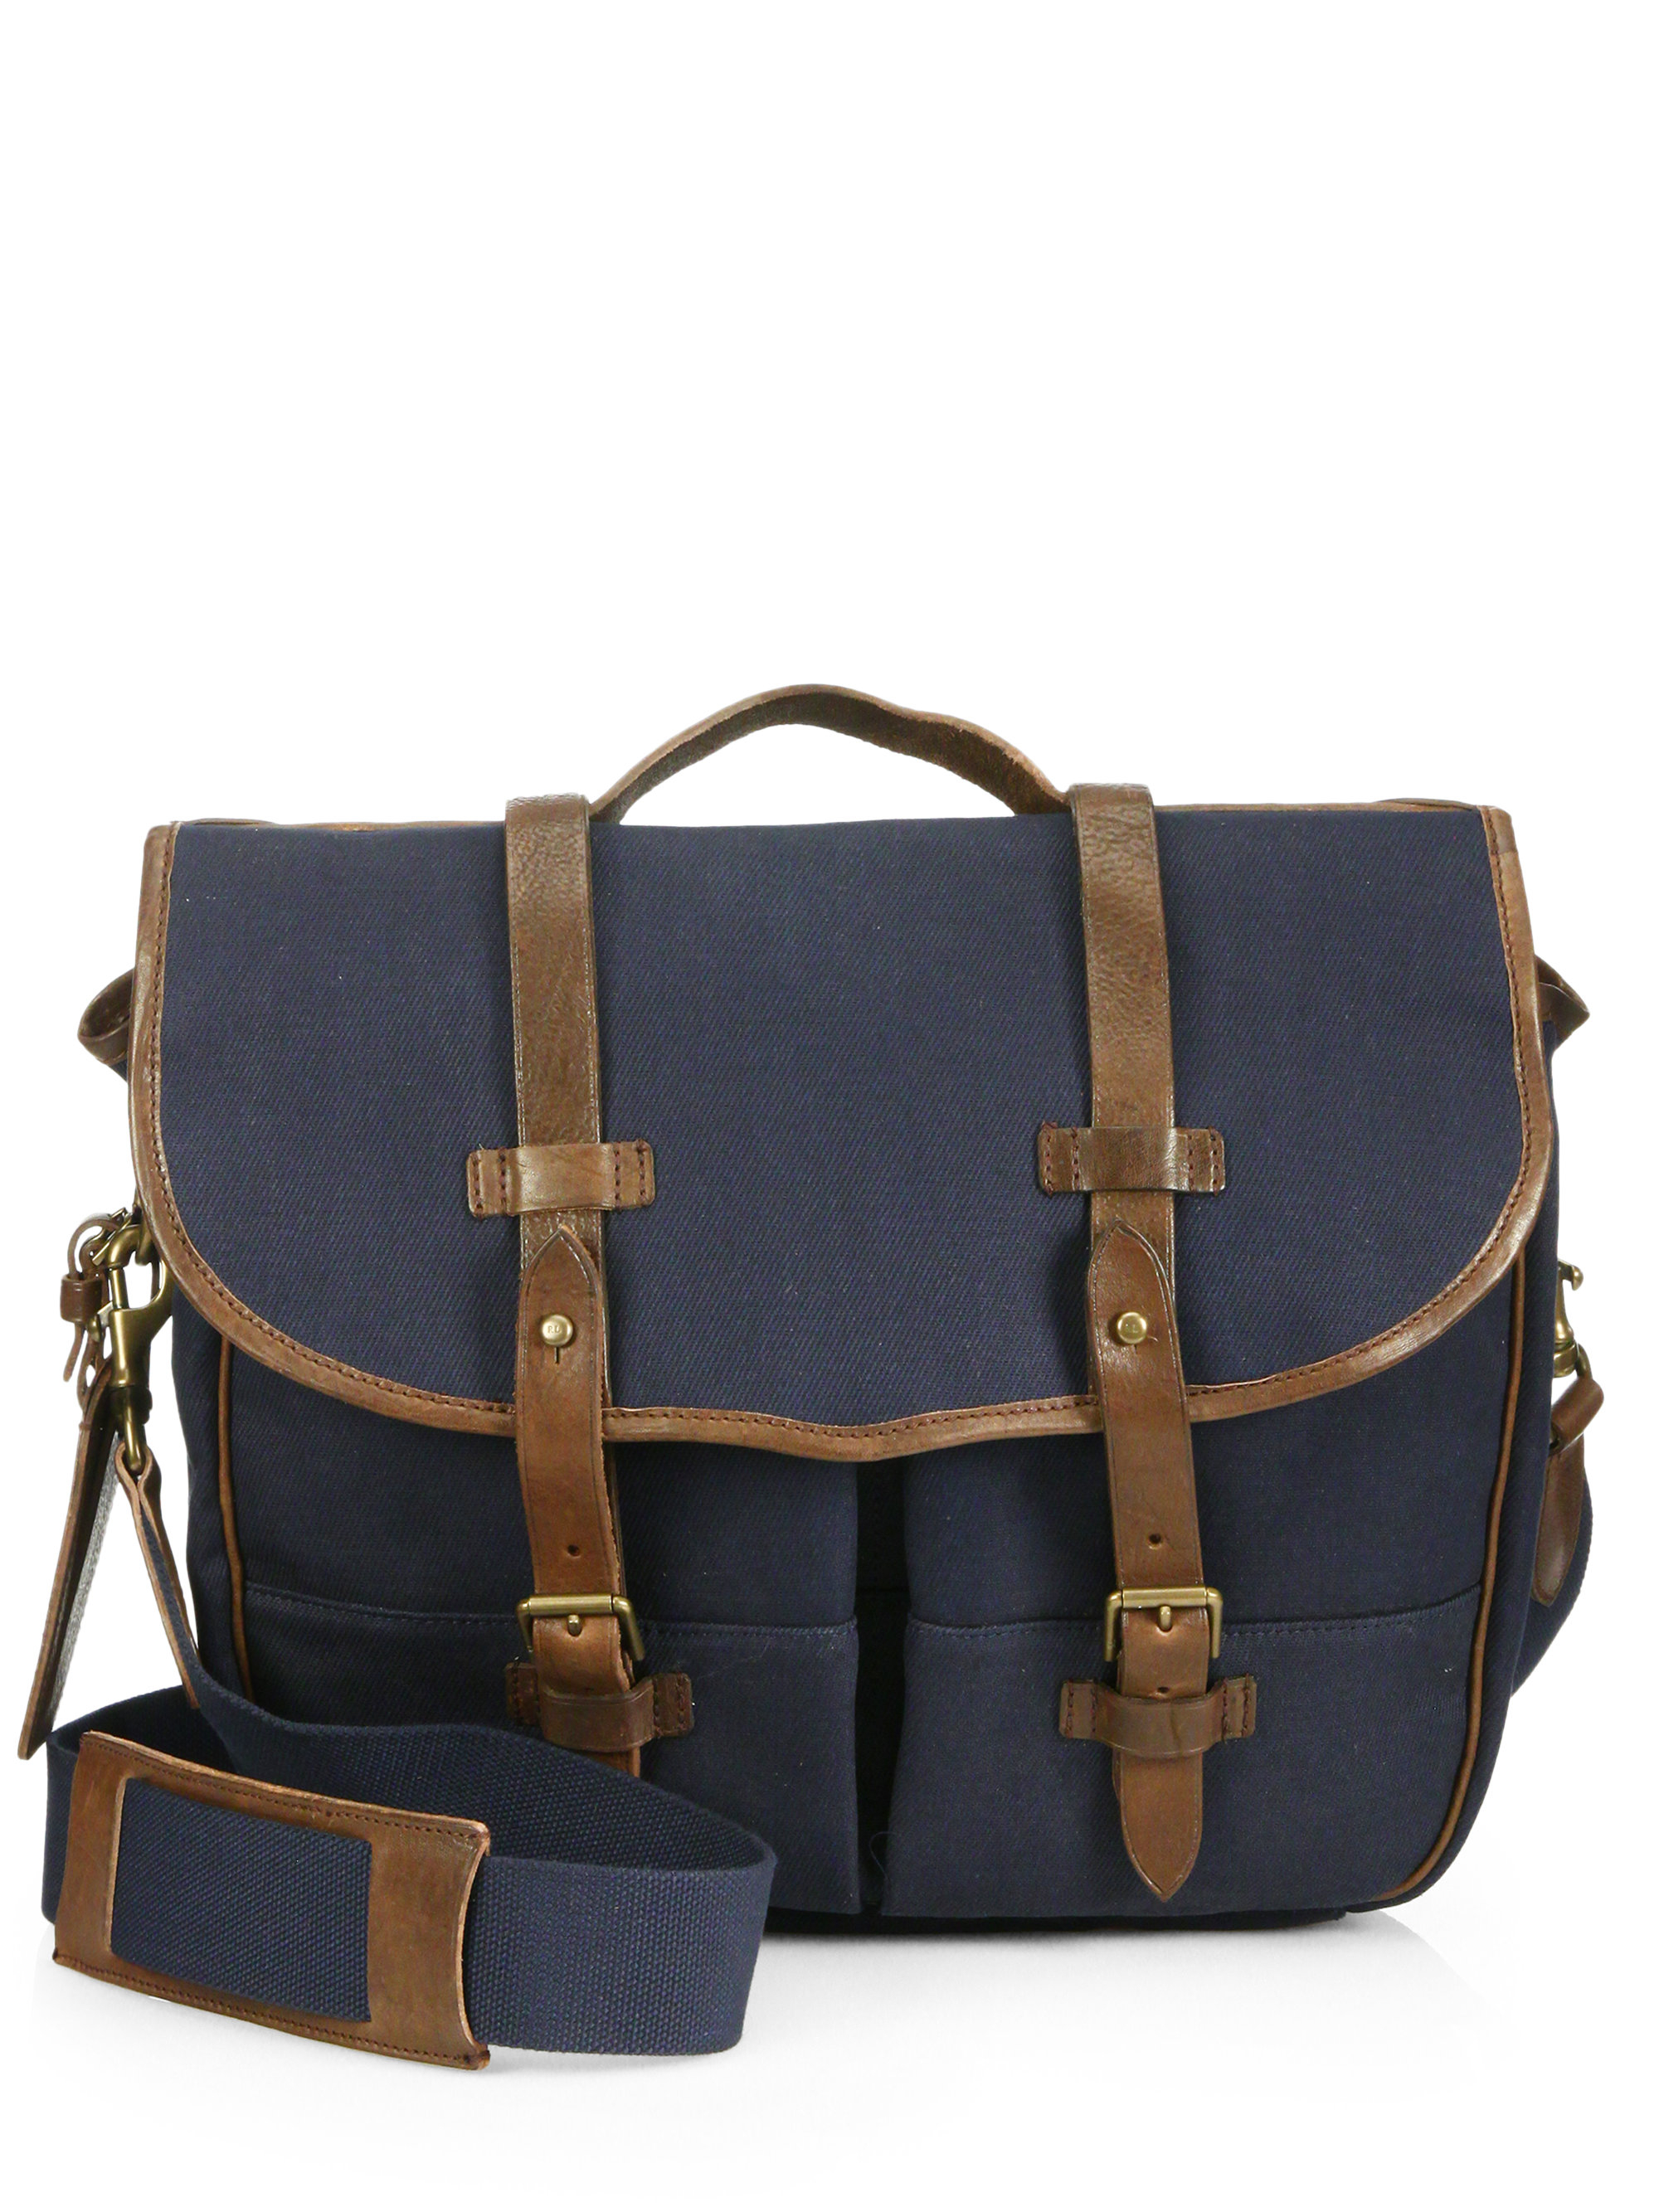 Lyst - Polo Ralph Lauren Waxed Twill Messenger Bag in Blue for Men 3ccb924326